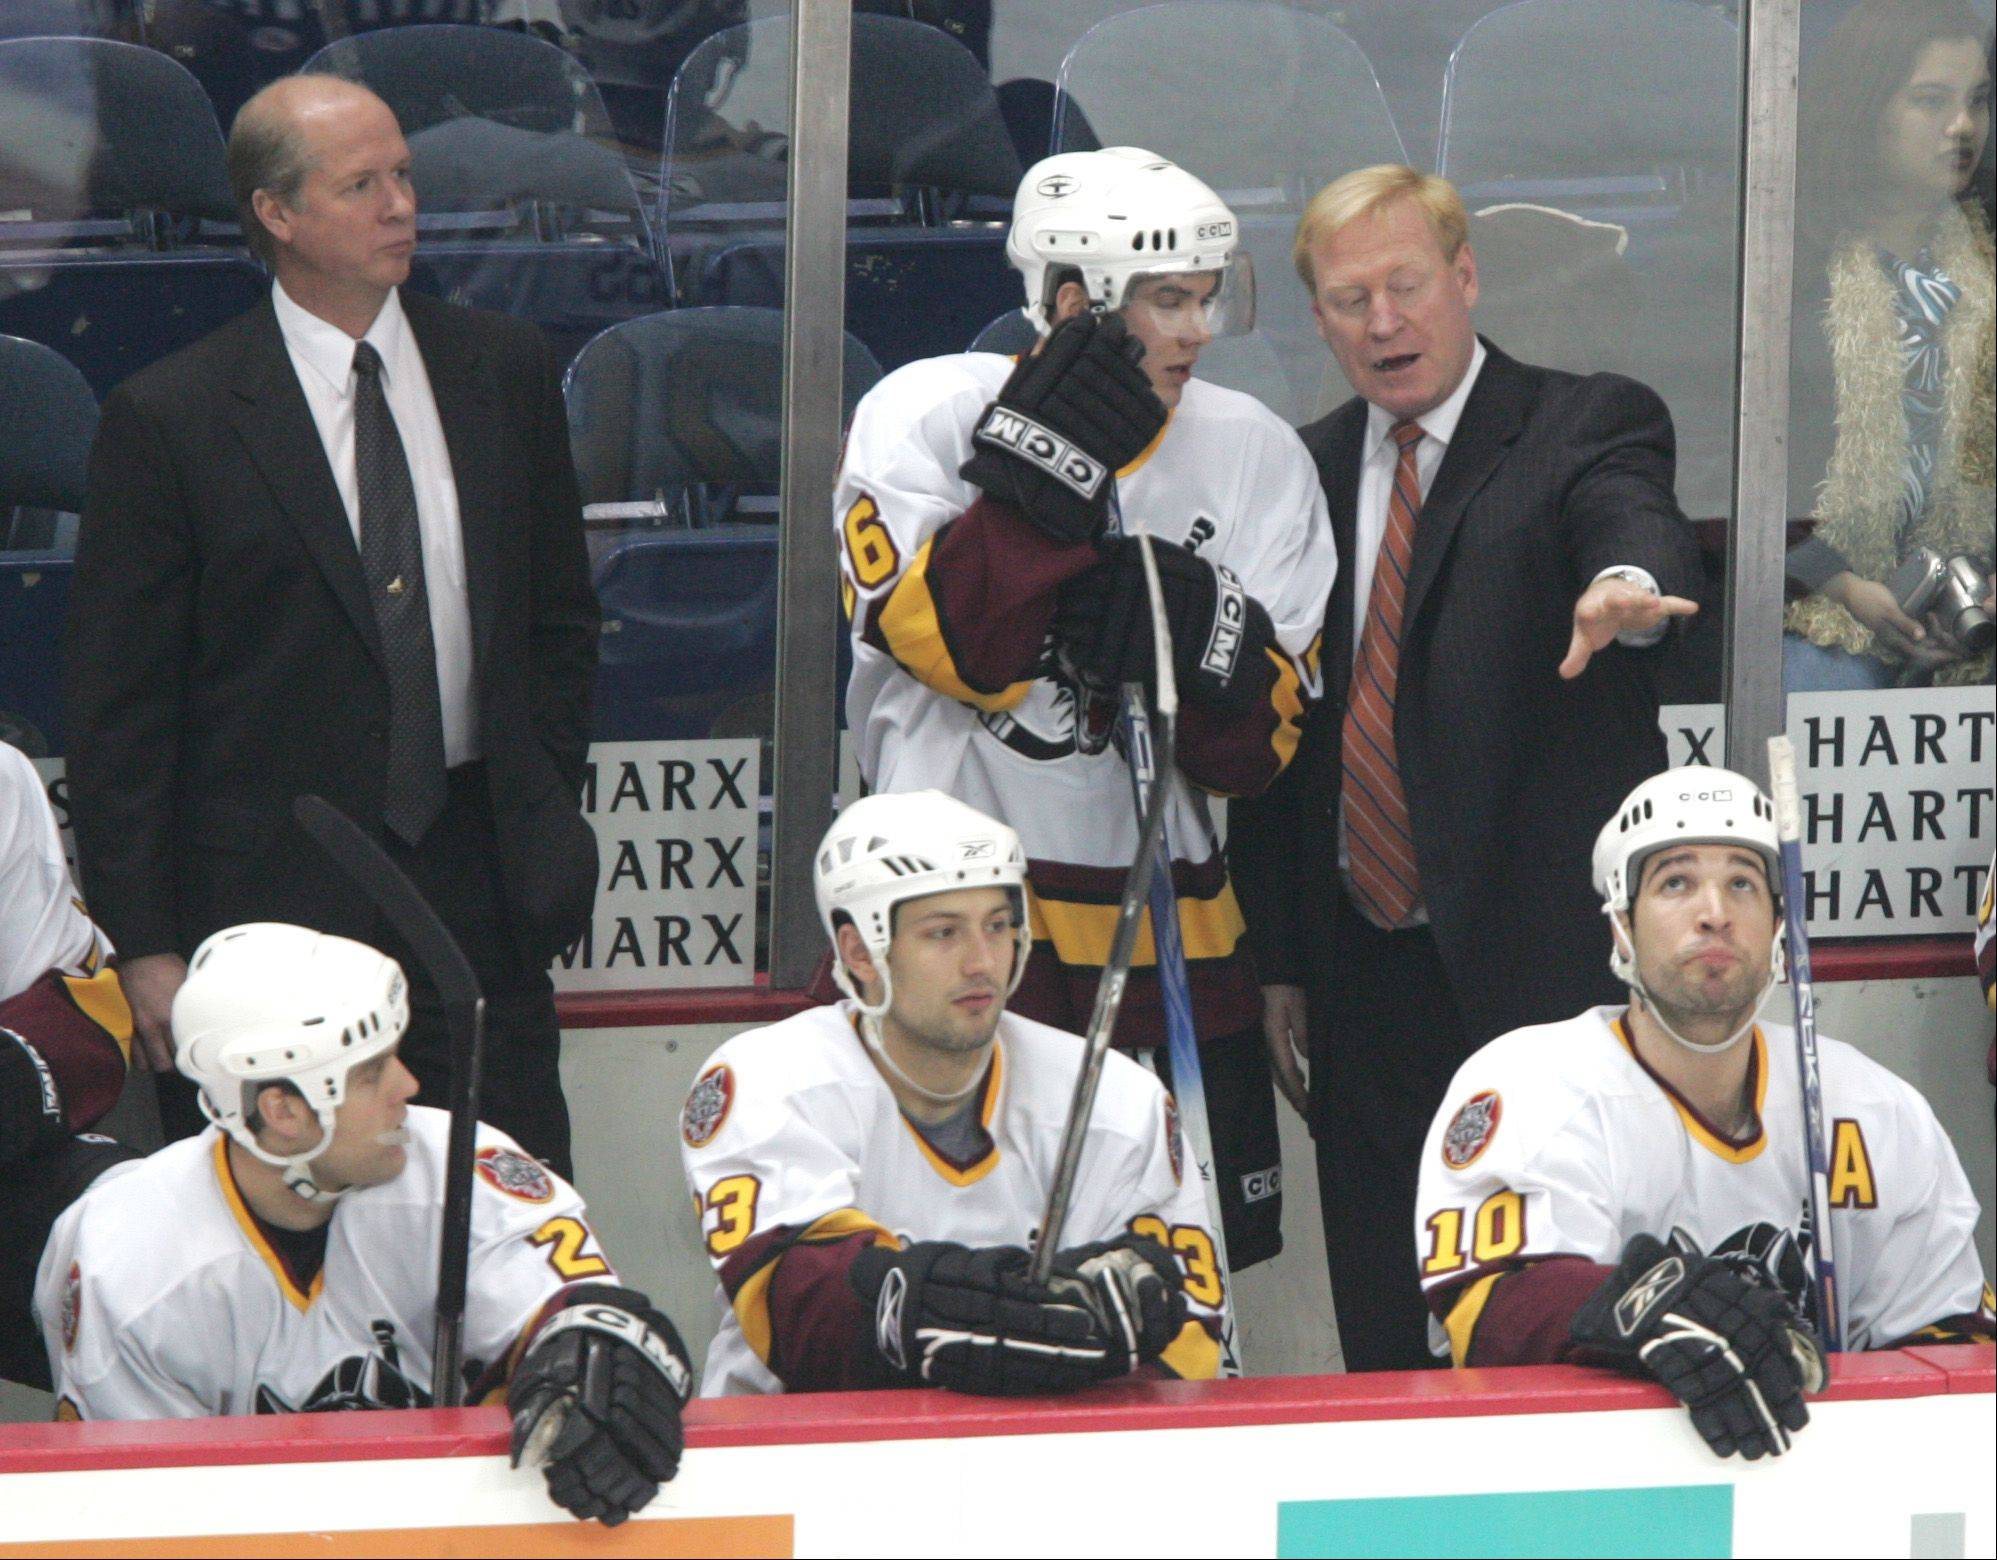 After five years away in the NHL, John Anderson, right, is back coaching the Chicago Wolves, the franchise he led to four titles. The Wolves will host their home opener for their 20th hockey season on Saturday at Allstate Arena.